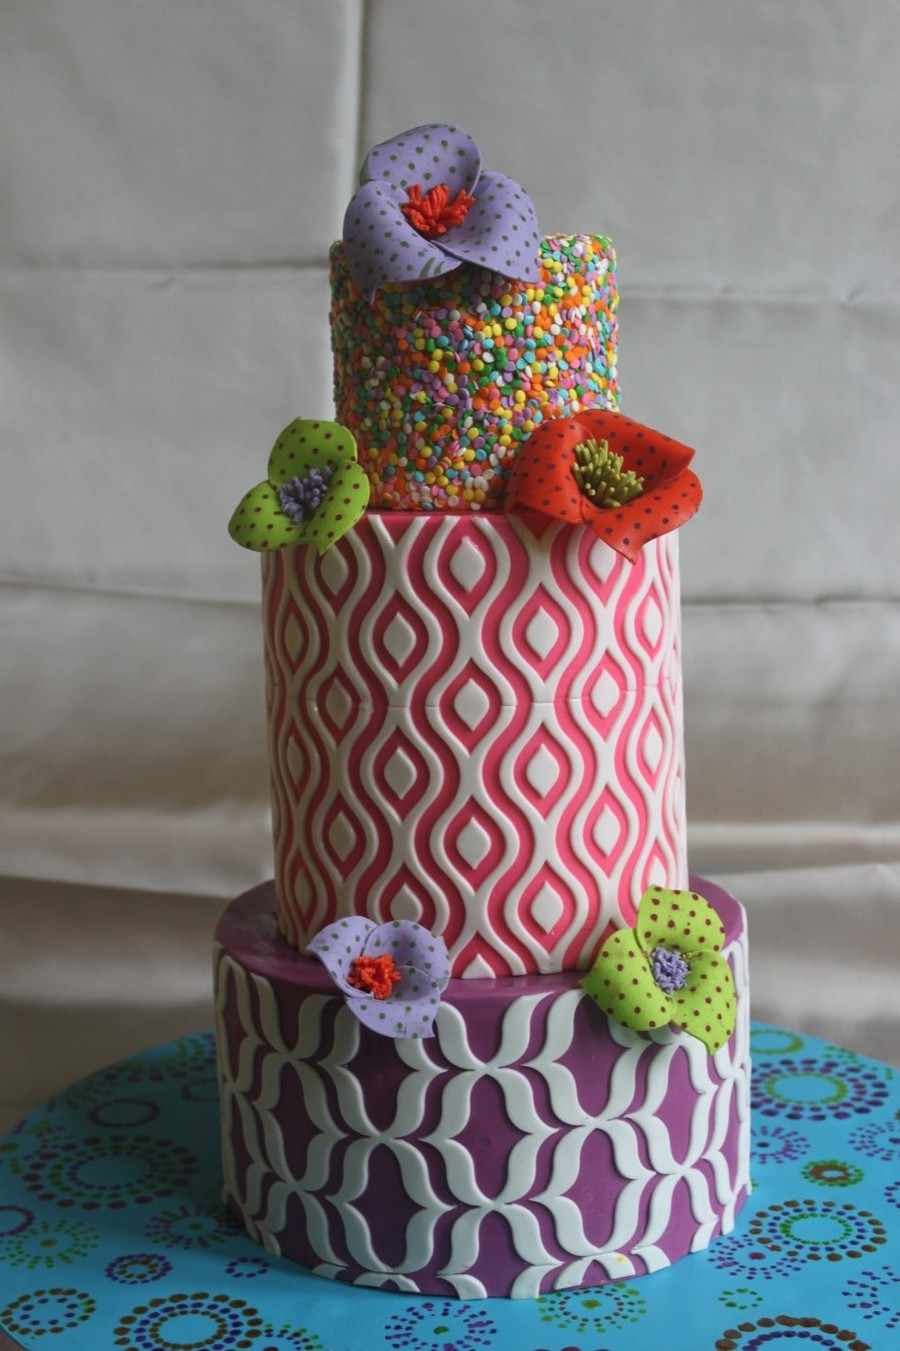 The Sensational Cakes COLORFUL